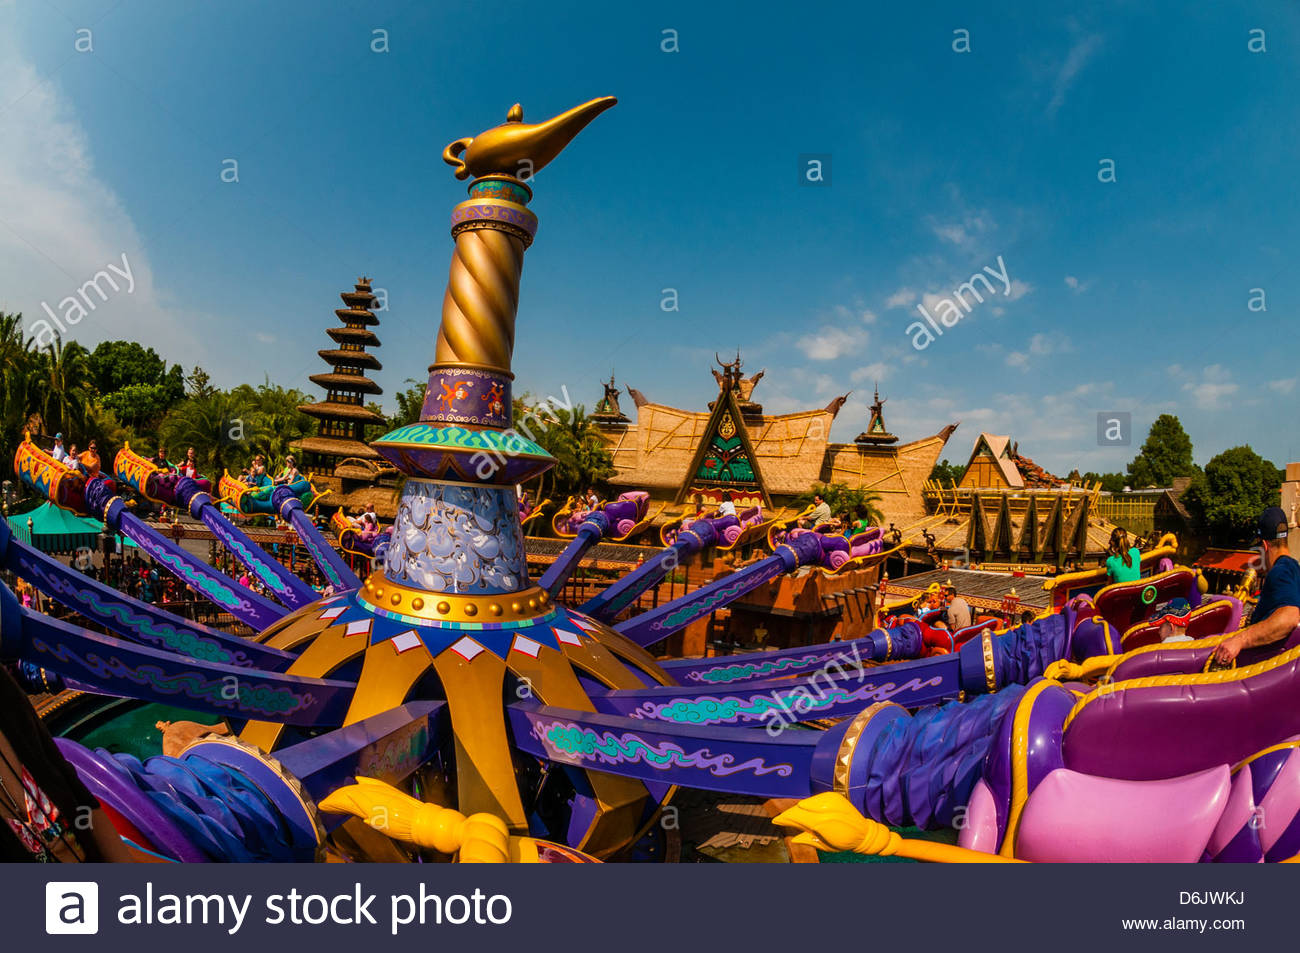 Alfombras Flokati The Magic Carpets Of Aladdin You - Carpet Vidalondon